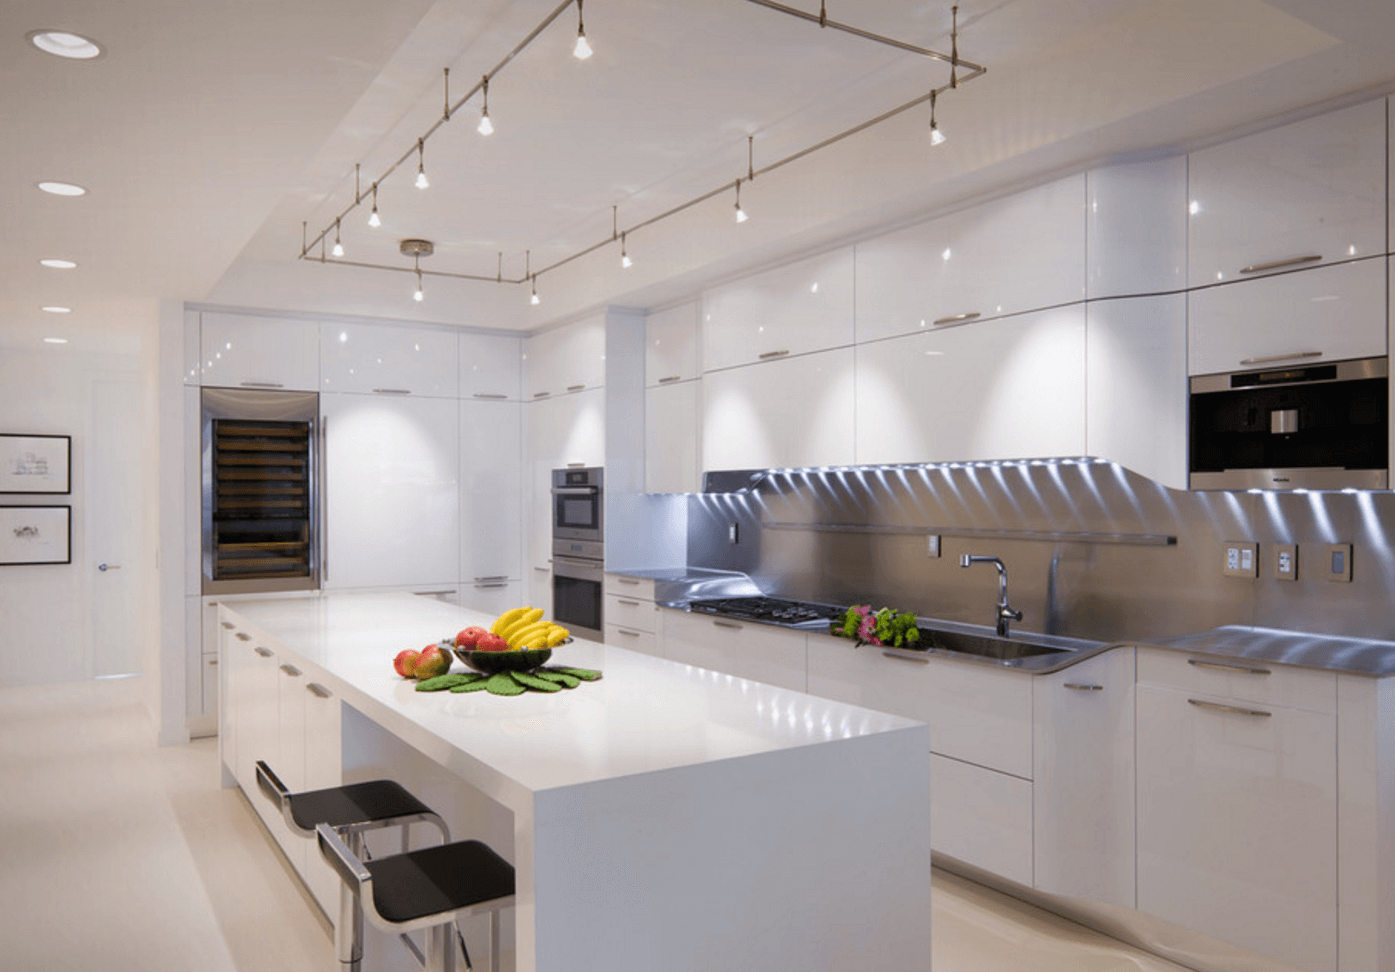 How to design kitchen lighting Recessed Lighting Track Lighting toby Zack Interior Design Freshomecom Easy Kitchen Lighting Upgrades Freshomecom